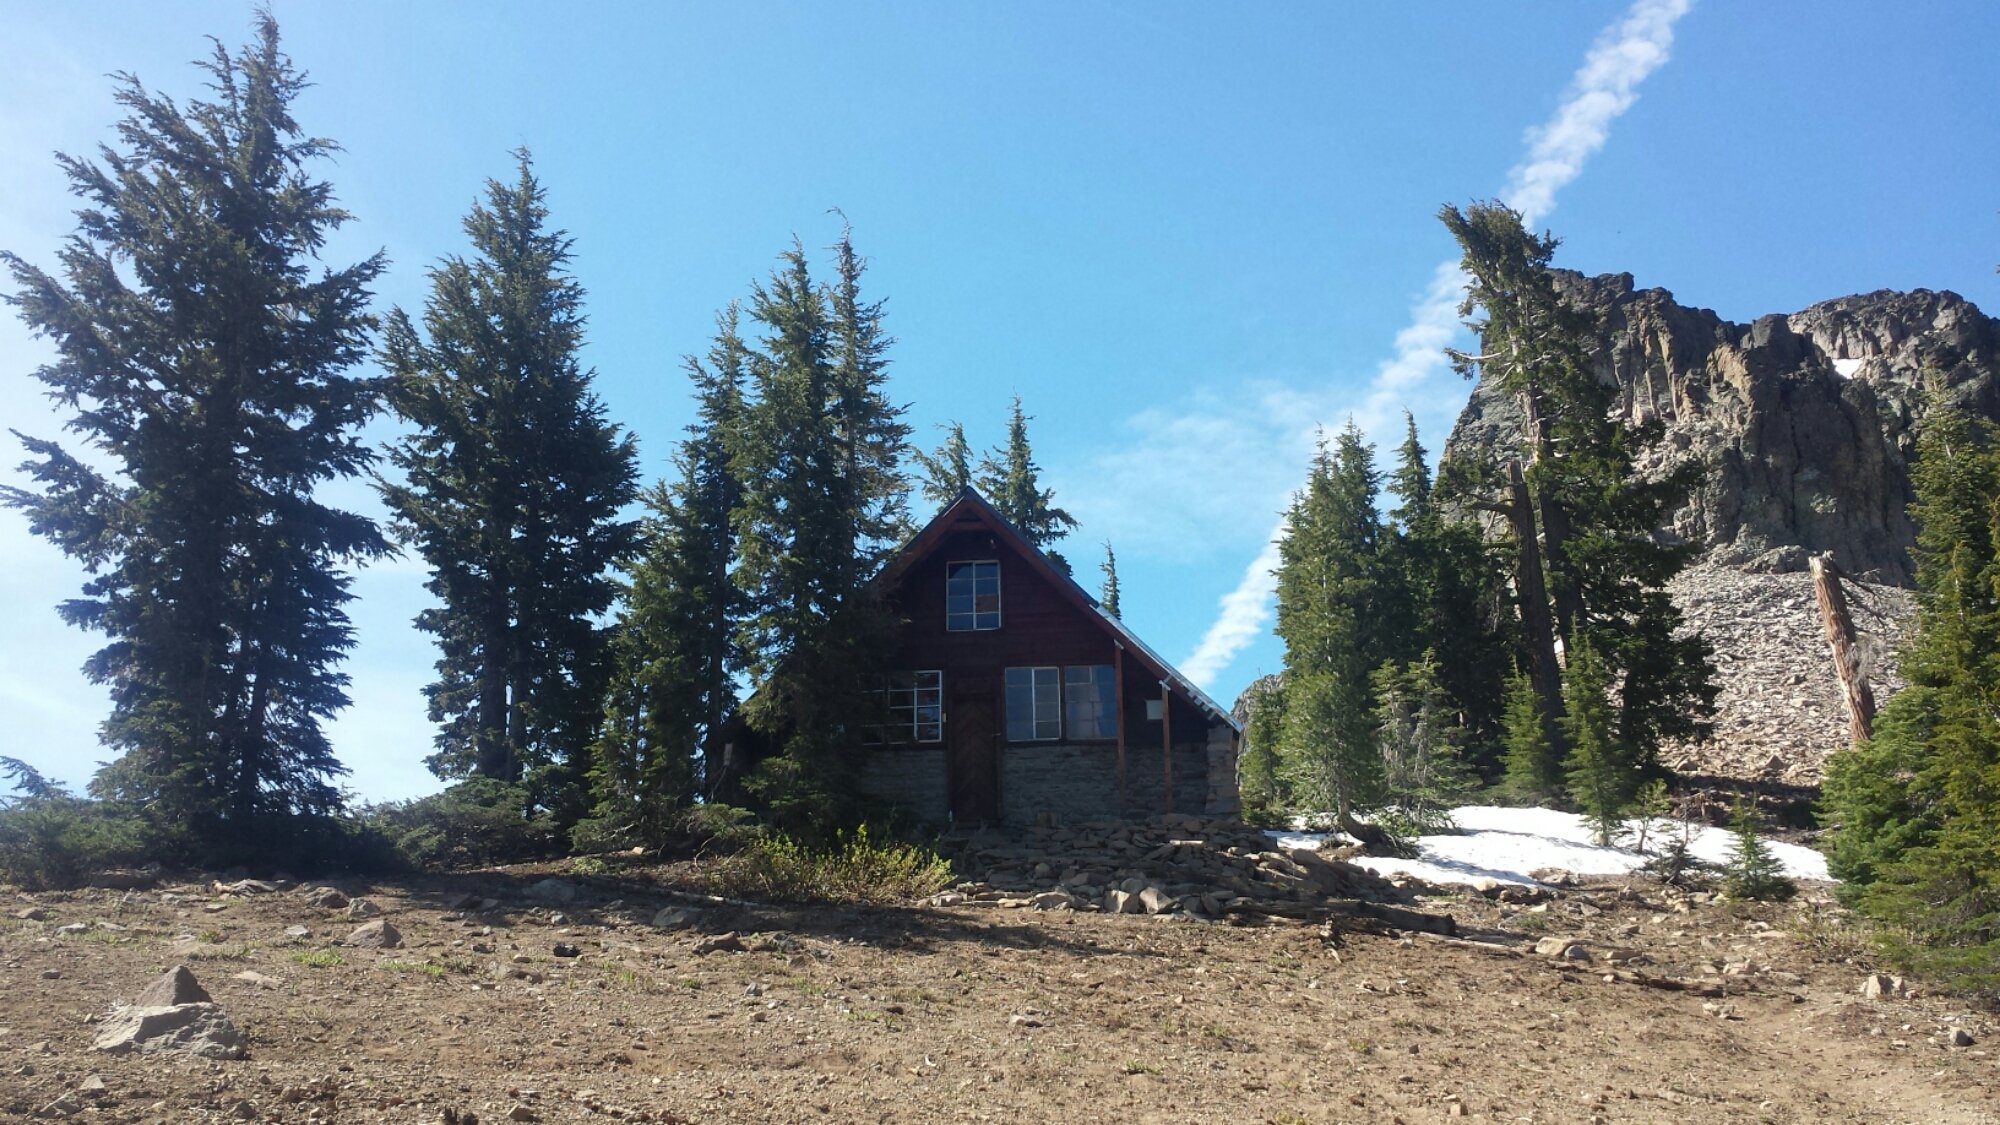 The Sierra Club Benson Hut